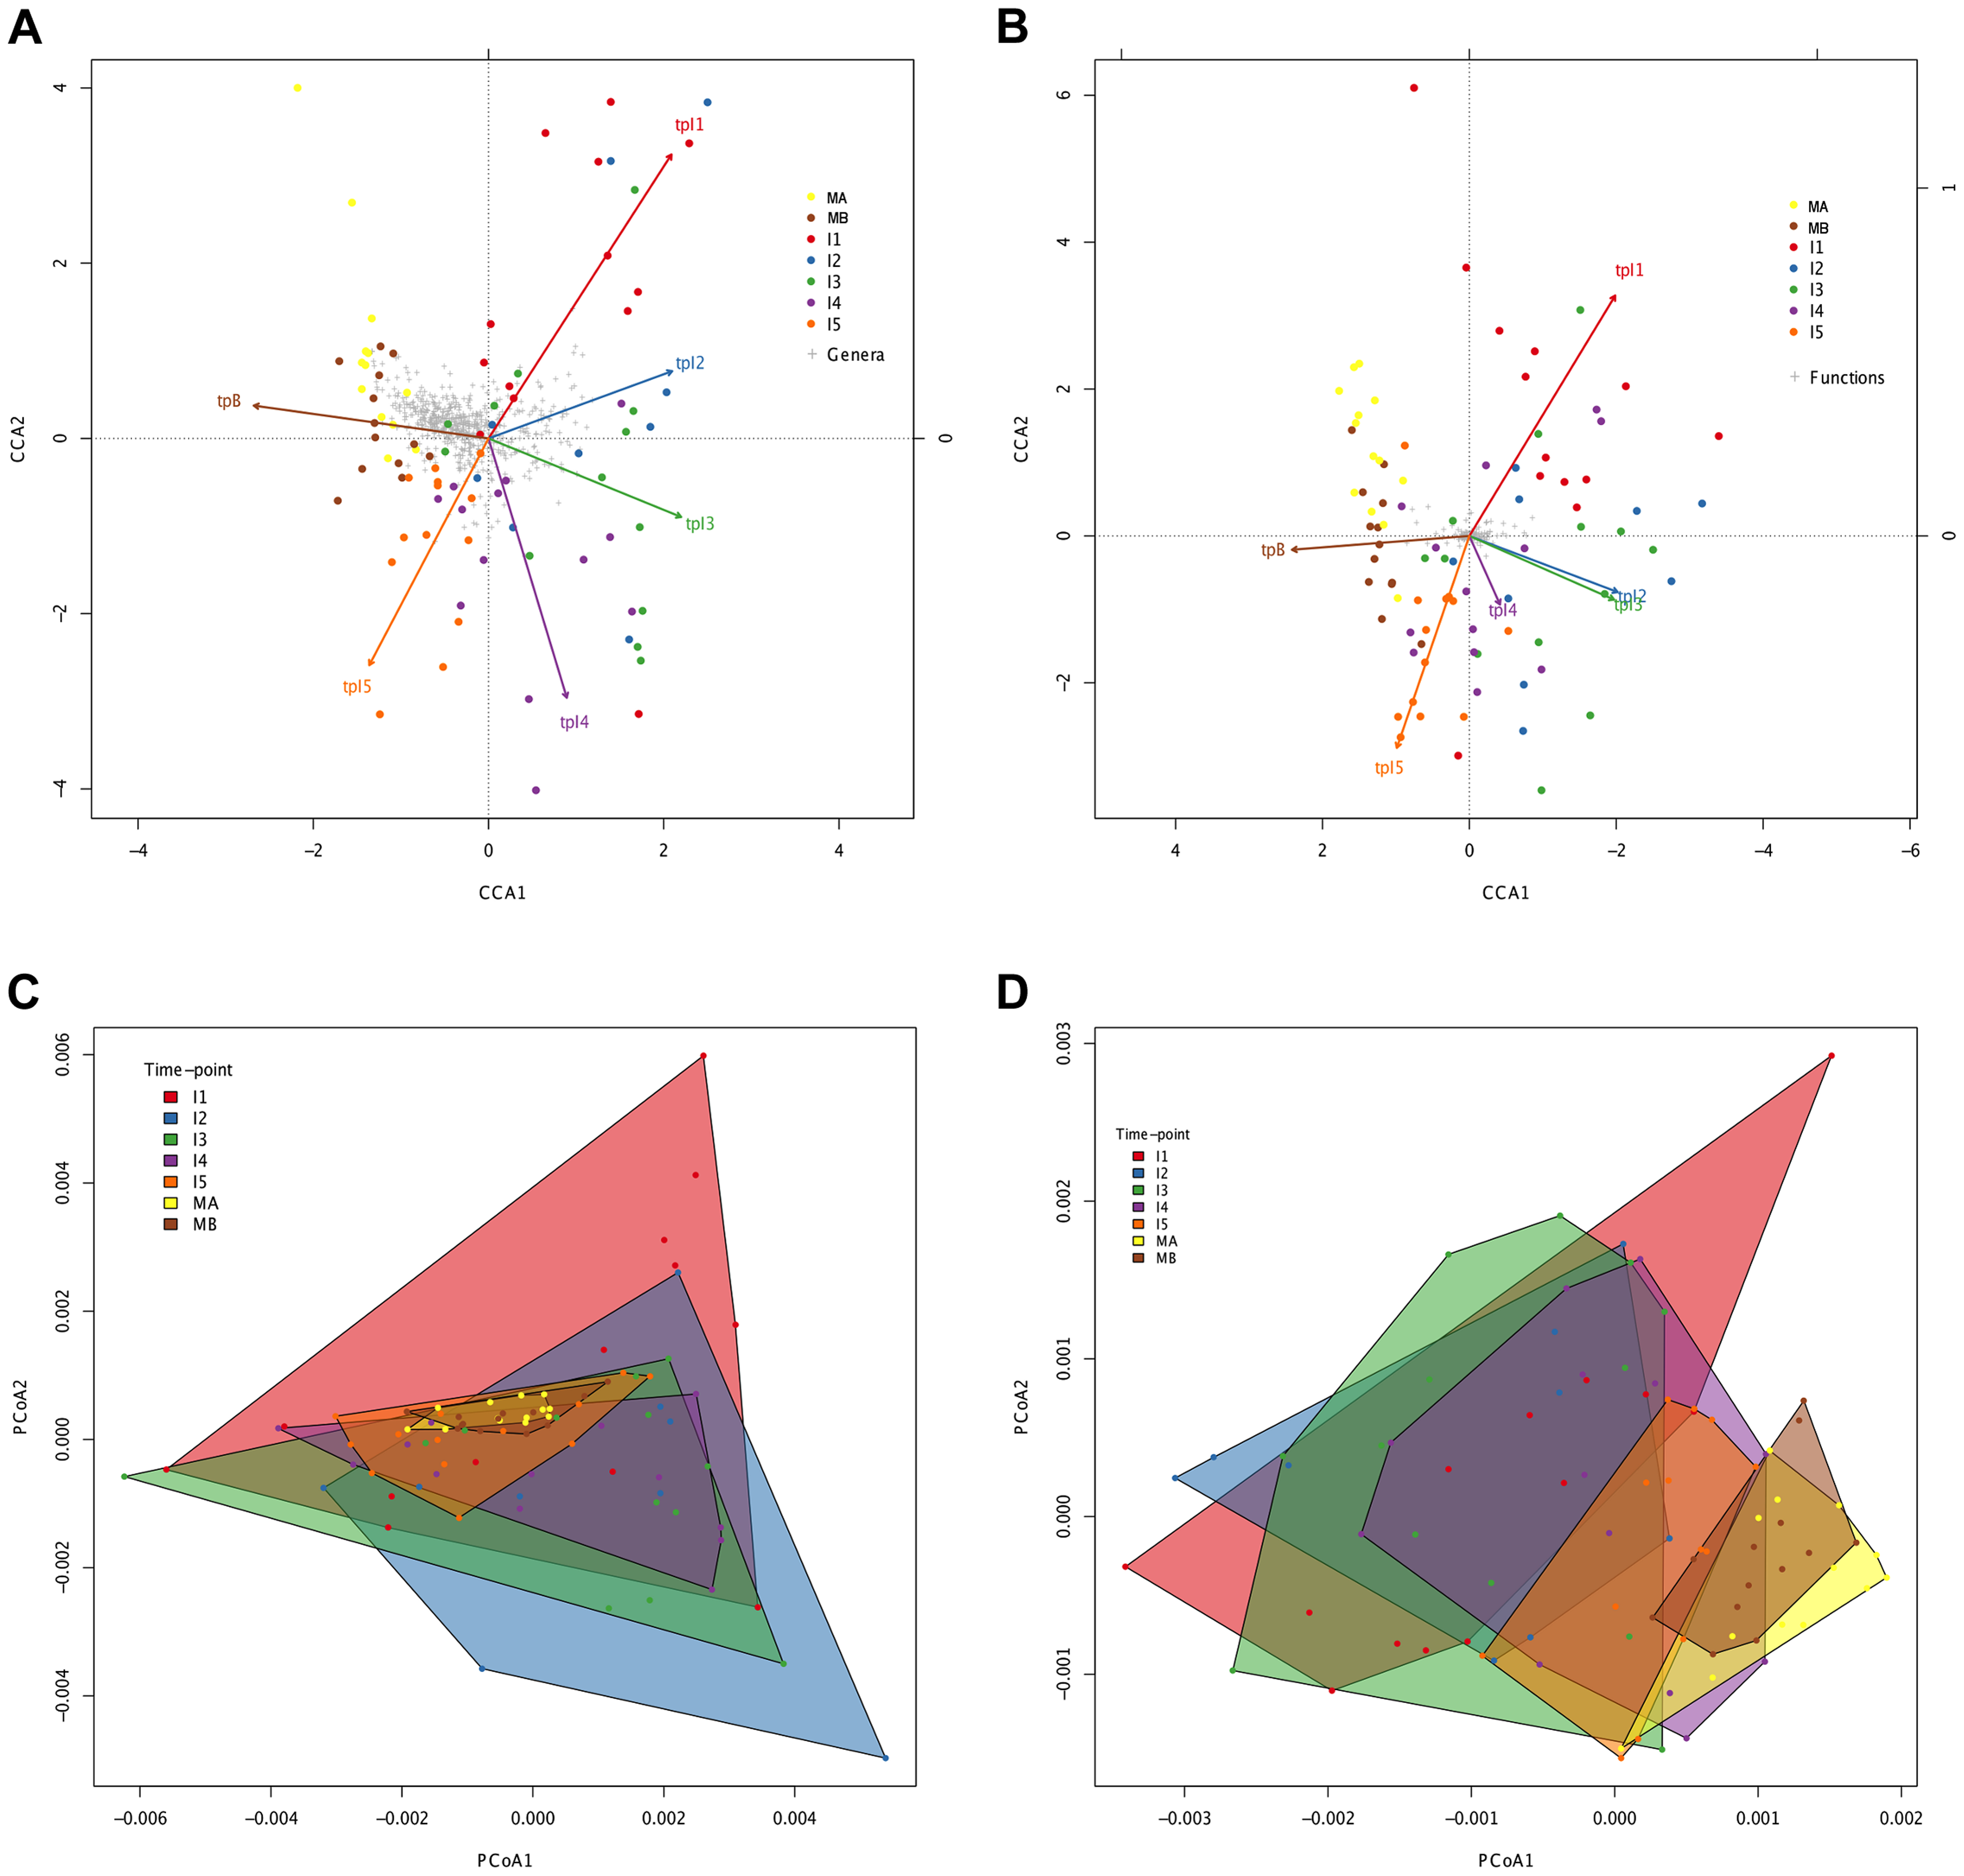 Directionality in taxonomic and functional change through time.